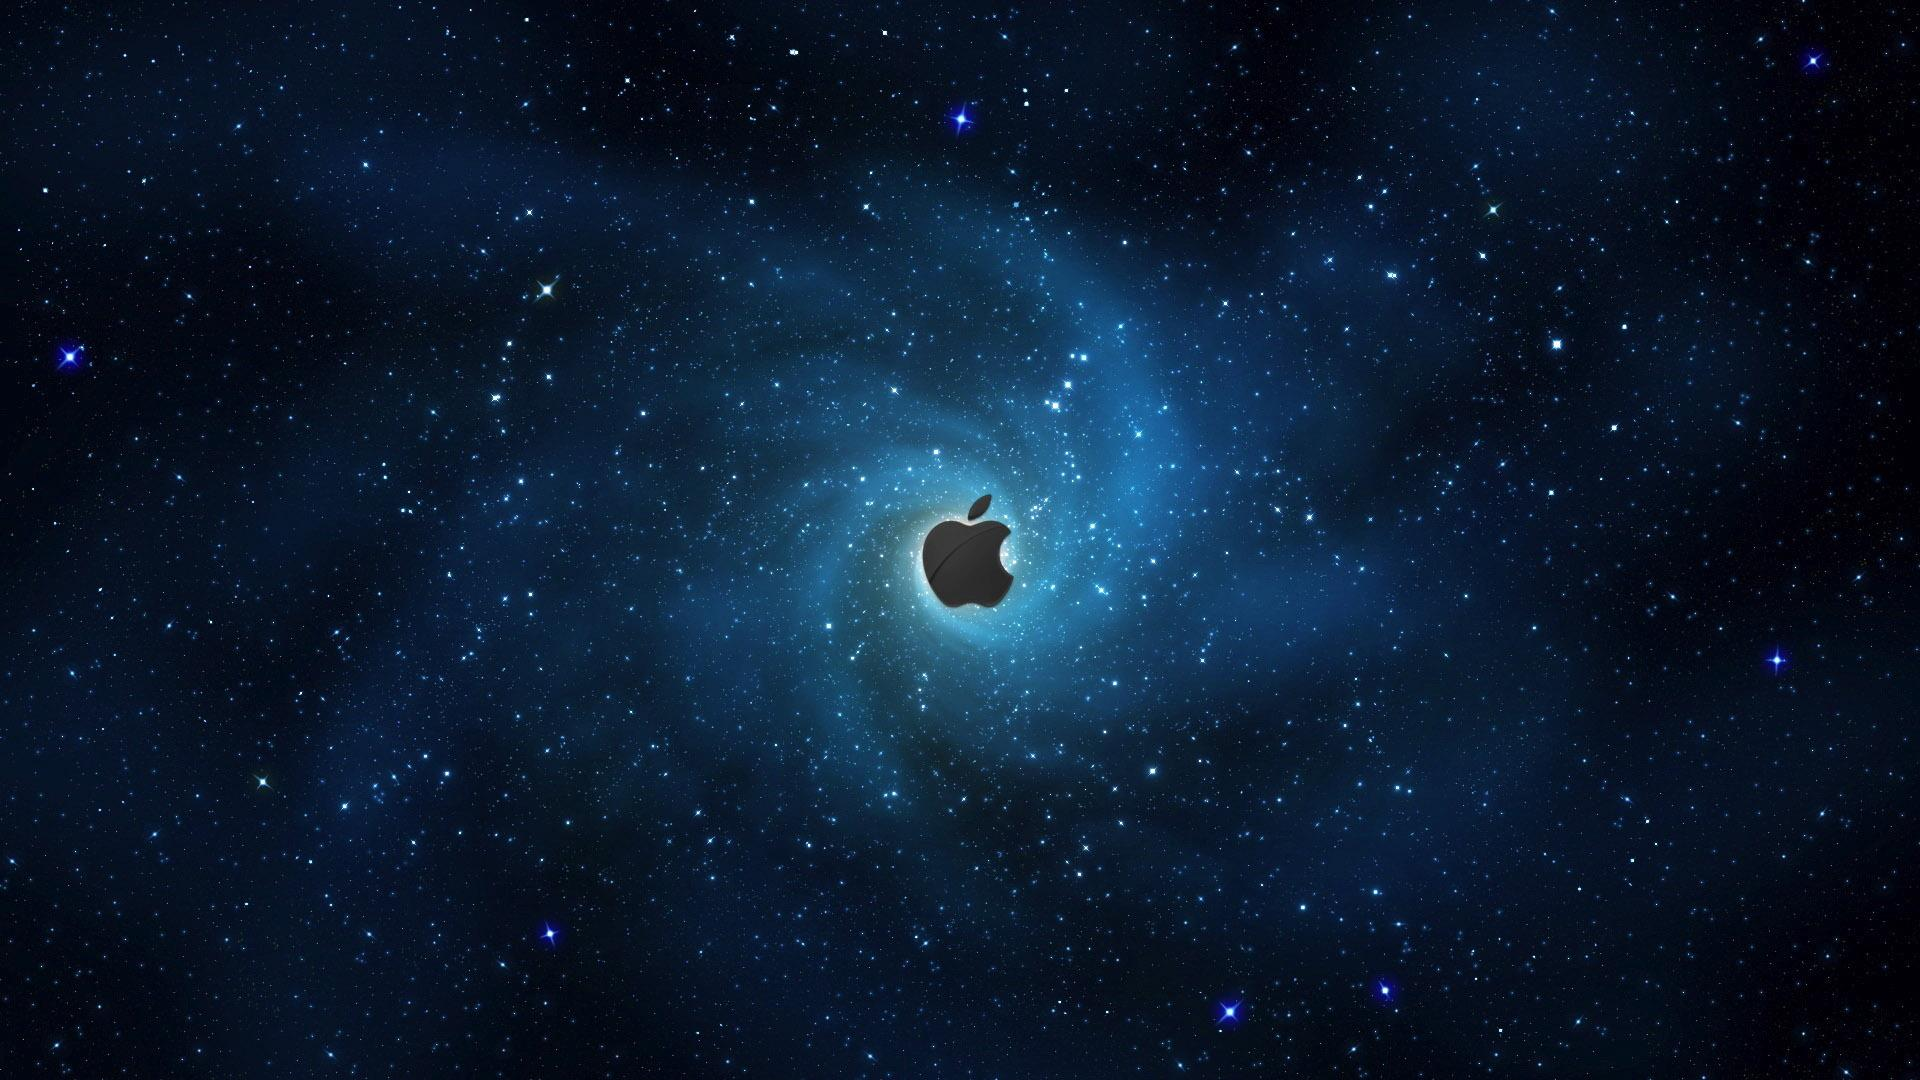 Apple Galaxy Background